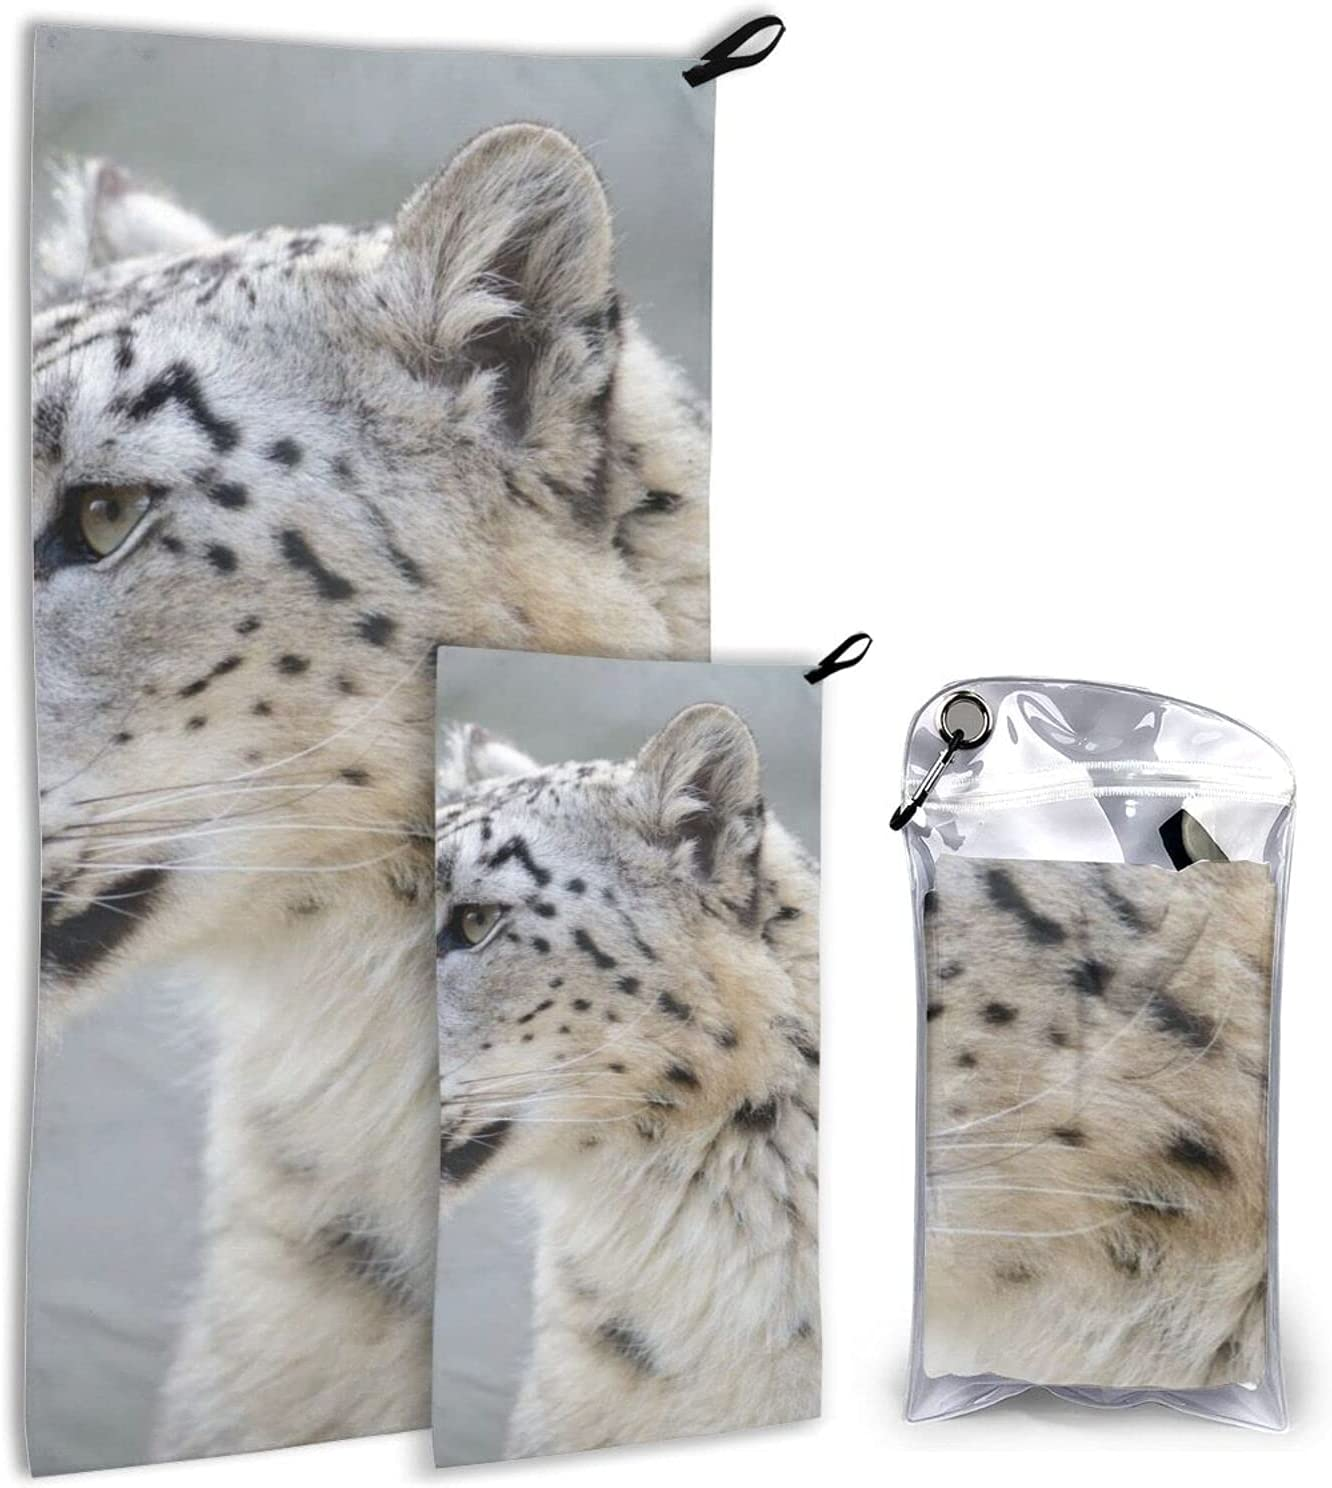 BTMGJKEY Snow Leopard Beach Towel Max 53% OFF Set 2 and of Soft Breathable 70% OFF Outlet